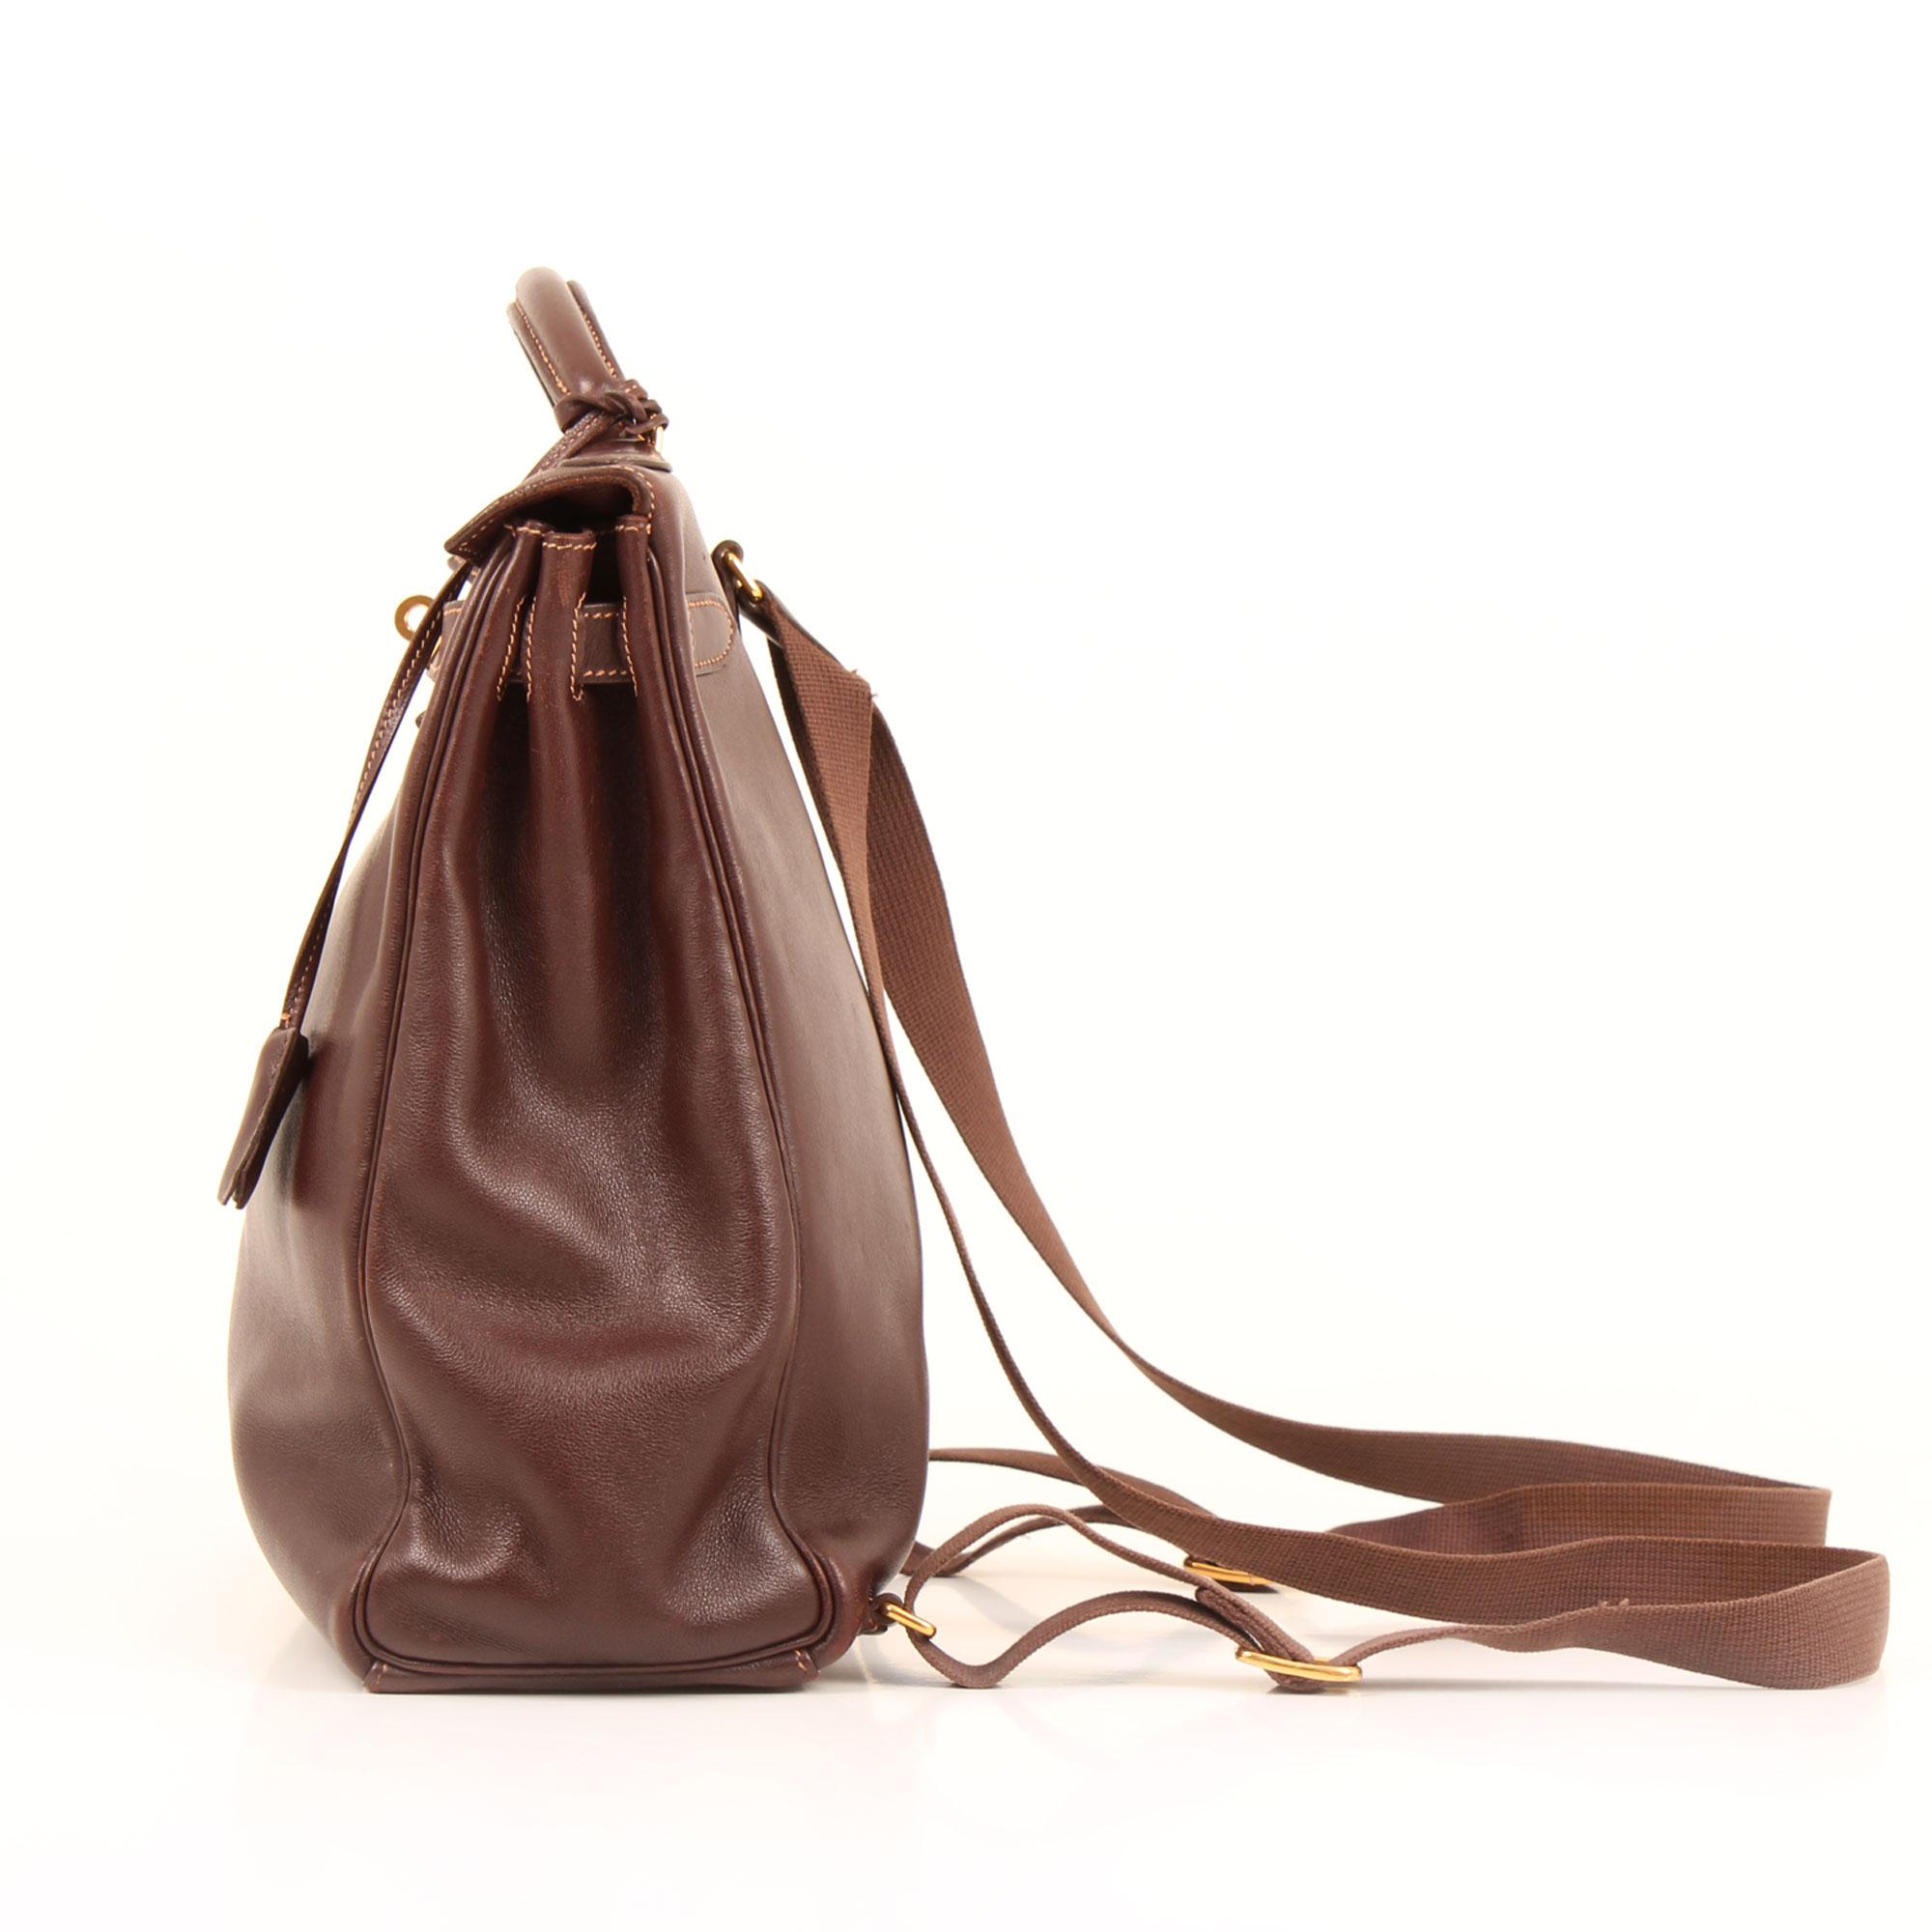 Imagen lateral del hermes kelly a dos box calf terre lateral